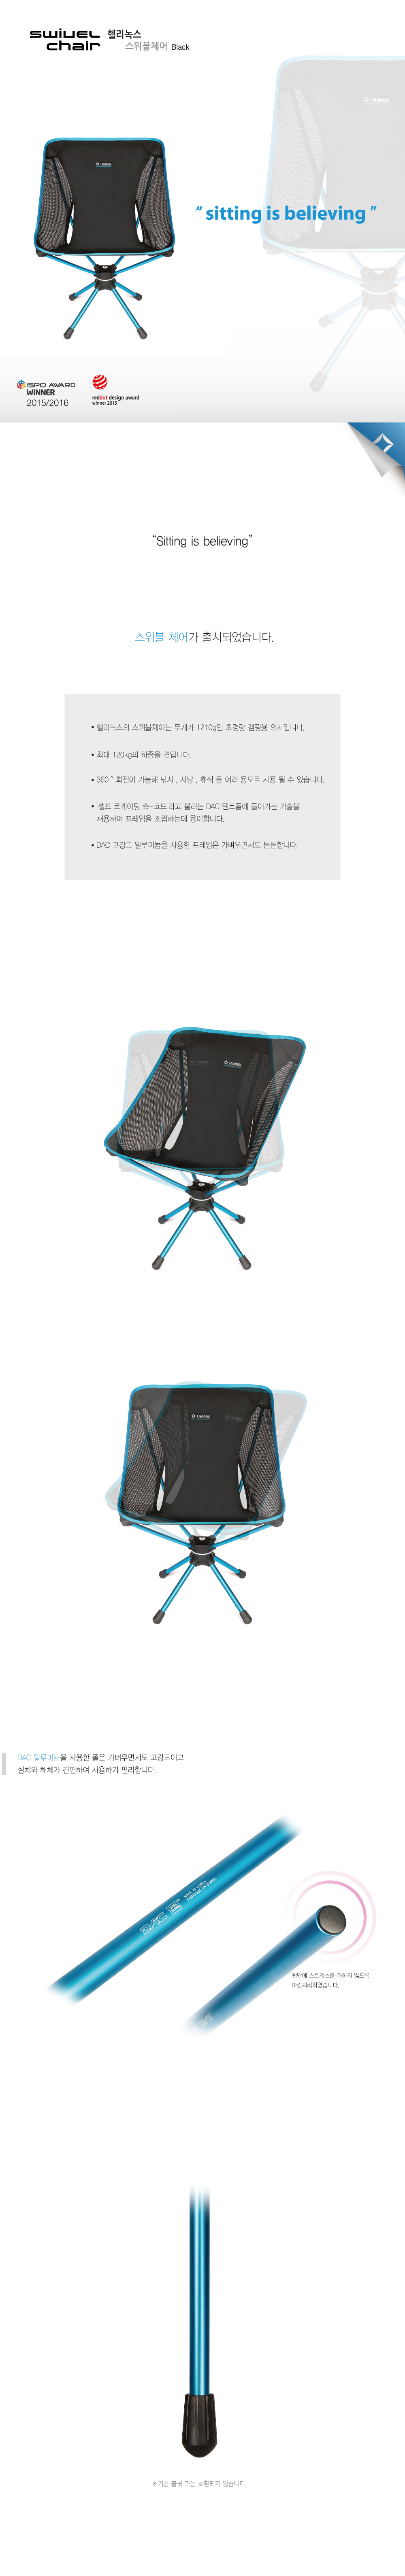 20150324-Helinox_swivel-chair-상세페이지-1_수정.jpg